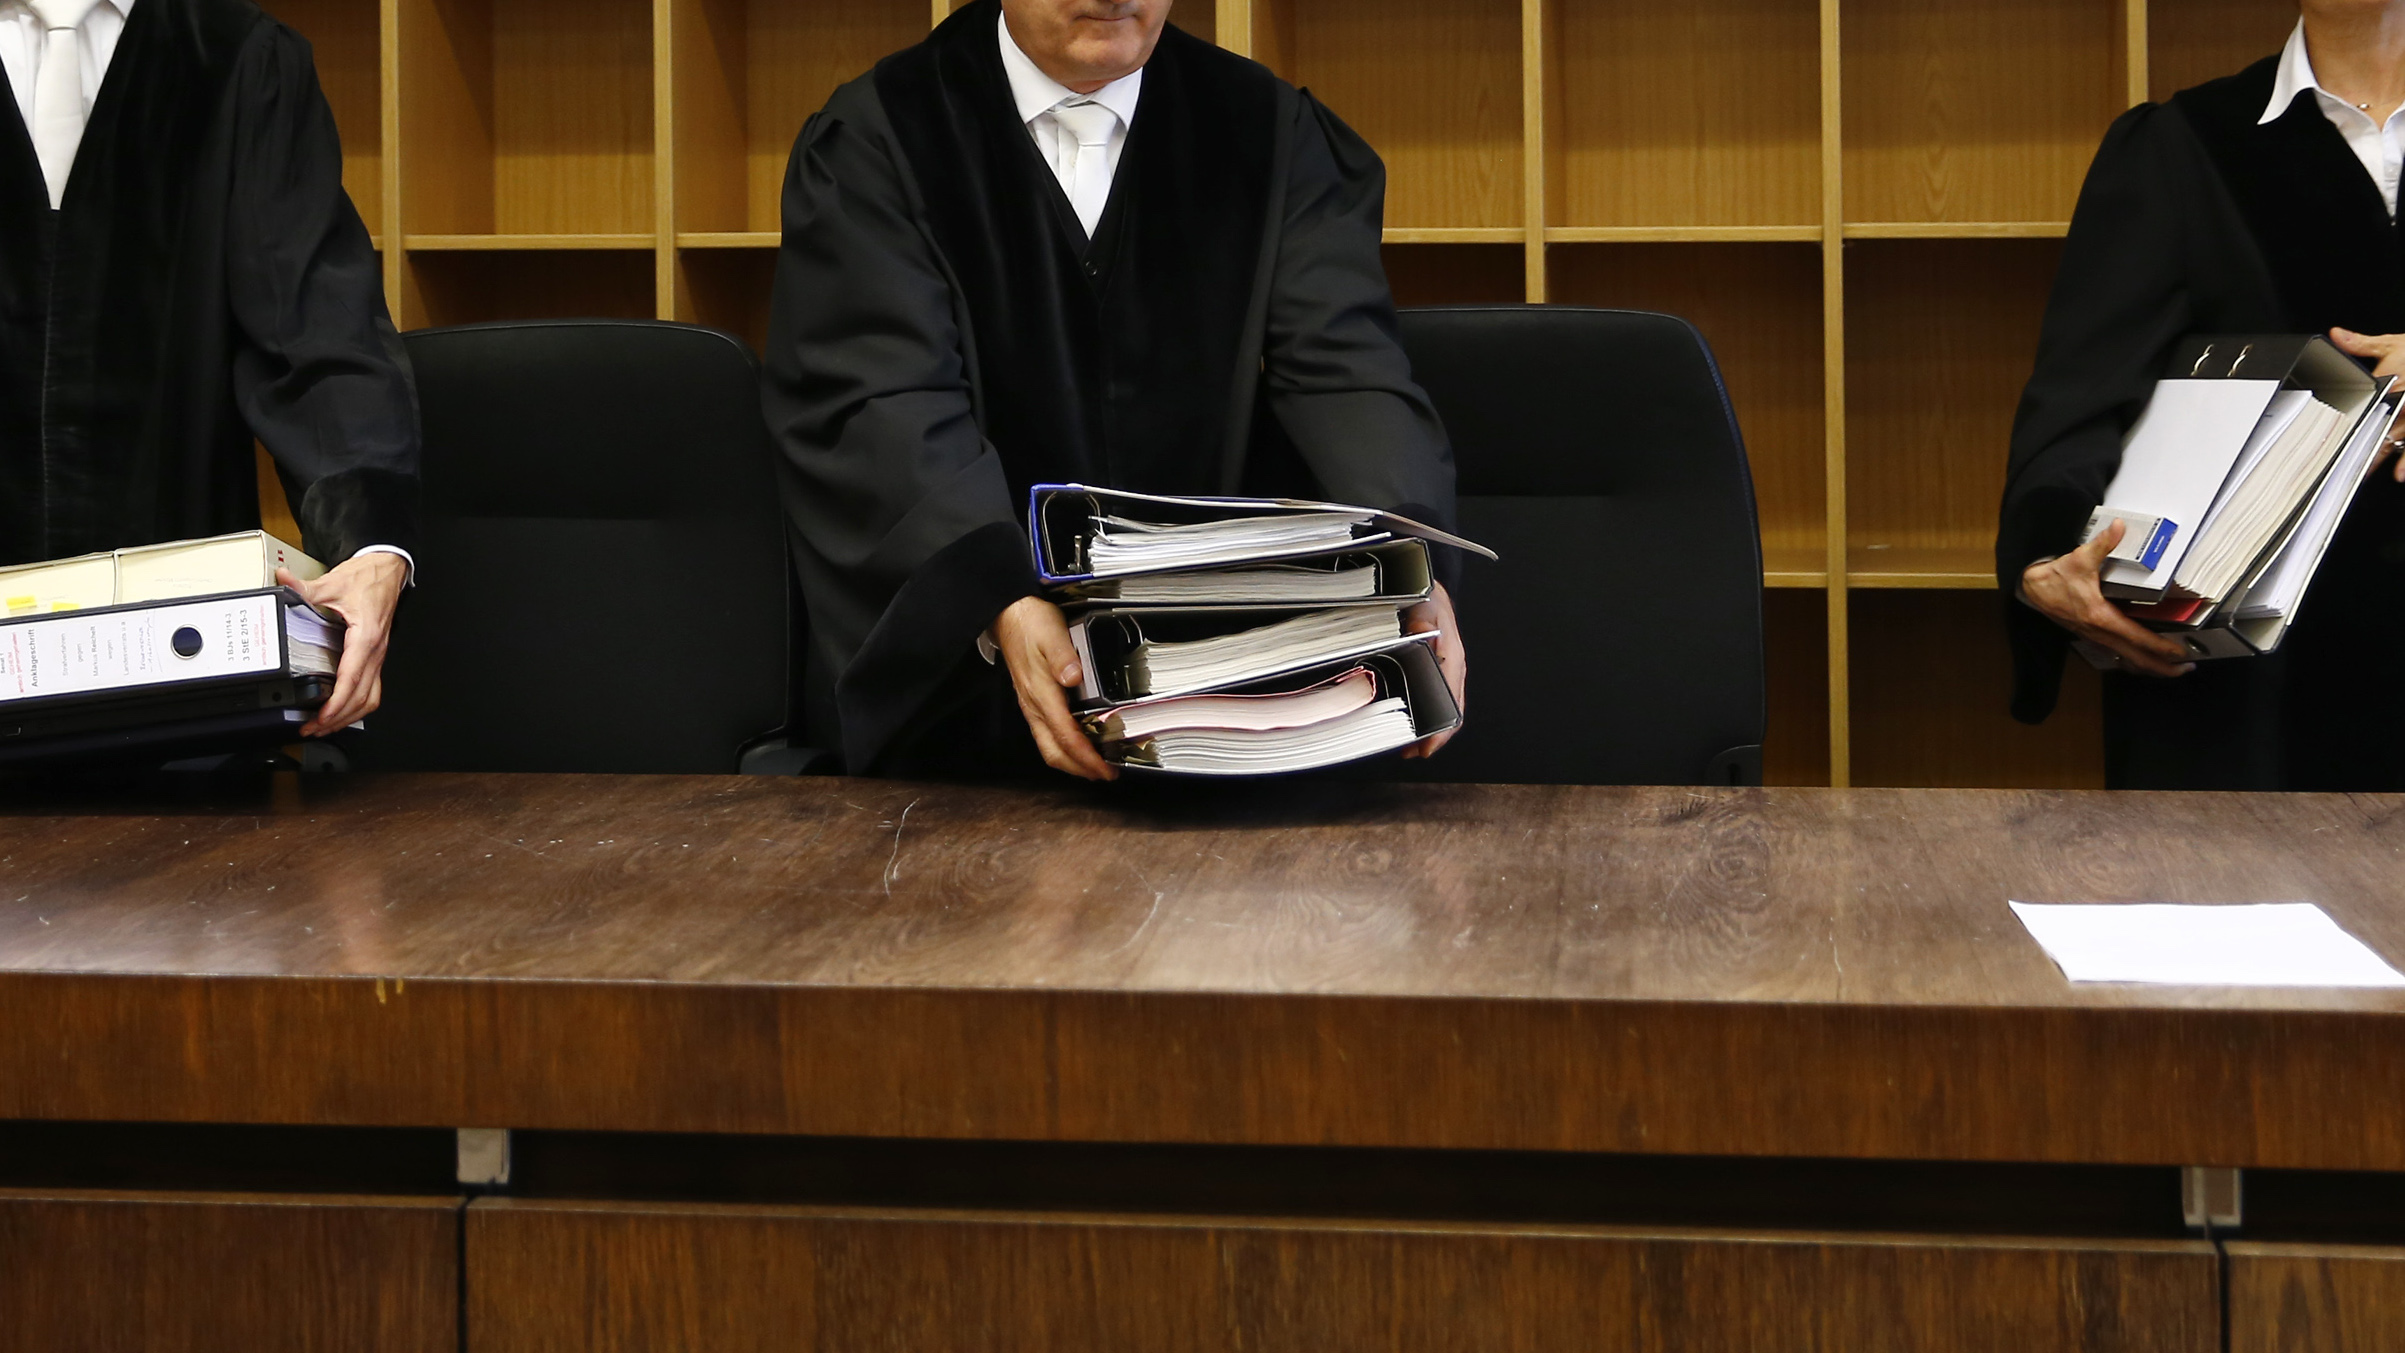 """Head Judge Reinhold Baier (C) arrives for the espionage trial against Markus R., a former employee of Germany's foreign intelligence agency (BND) at a courtroom in Munich, Germany, November 16, 2015.  The BND agent was arrested in 2014 on suspicion of spying for both U.S and Russian foreign intelligence agencies, after he sent an email containing secret documents to the Russian Consulate General in Munich, which he had previously sent to the CIA. According to both U.S. and German officials, Markus R. was a """"walk-in agent"""" - someone who presents himself on his own to a foreign spy service and dangles an offer of secrets.    REUTERS/Michael Dalder  - RTS7AFT"""